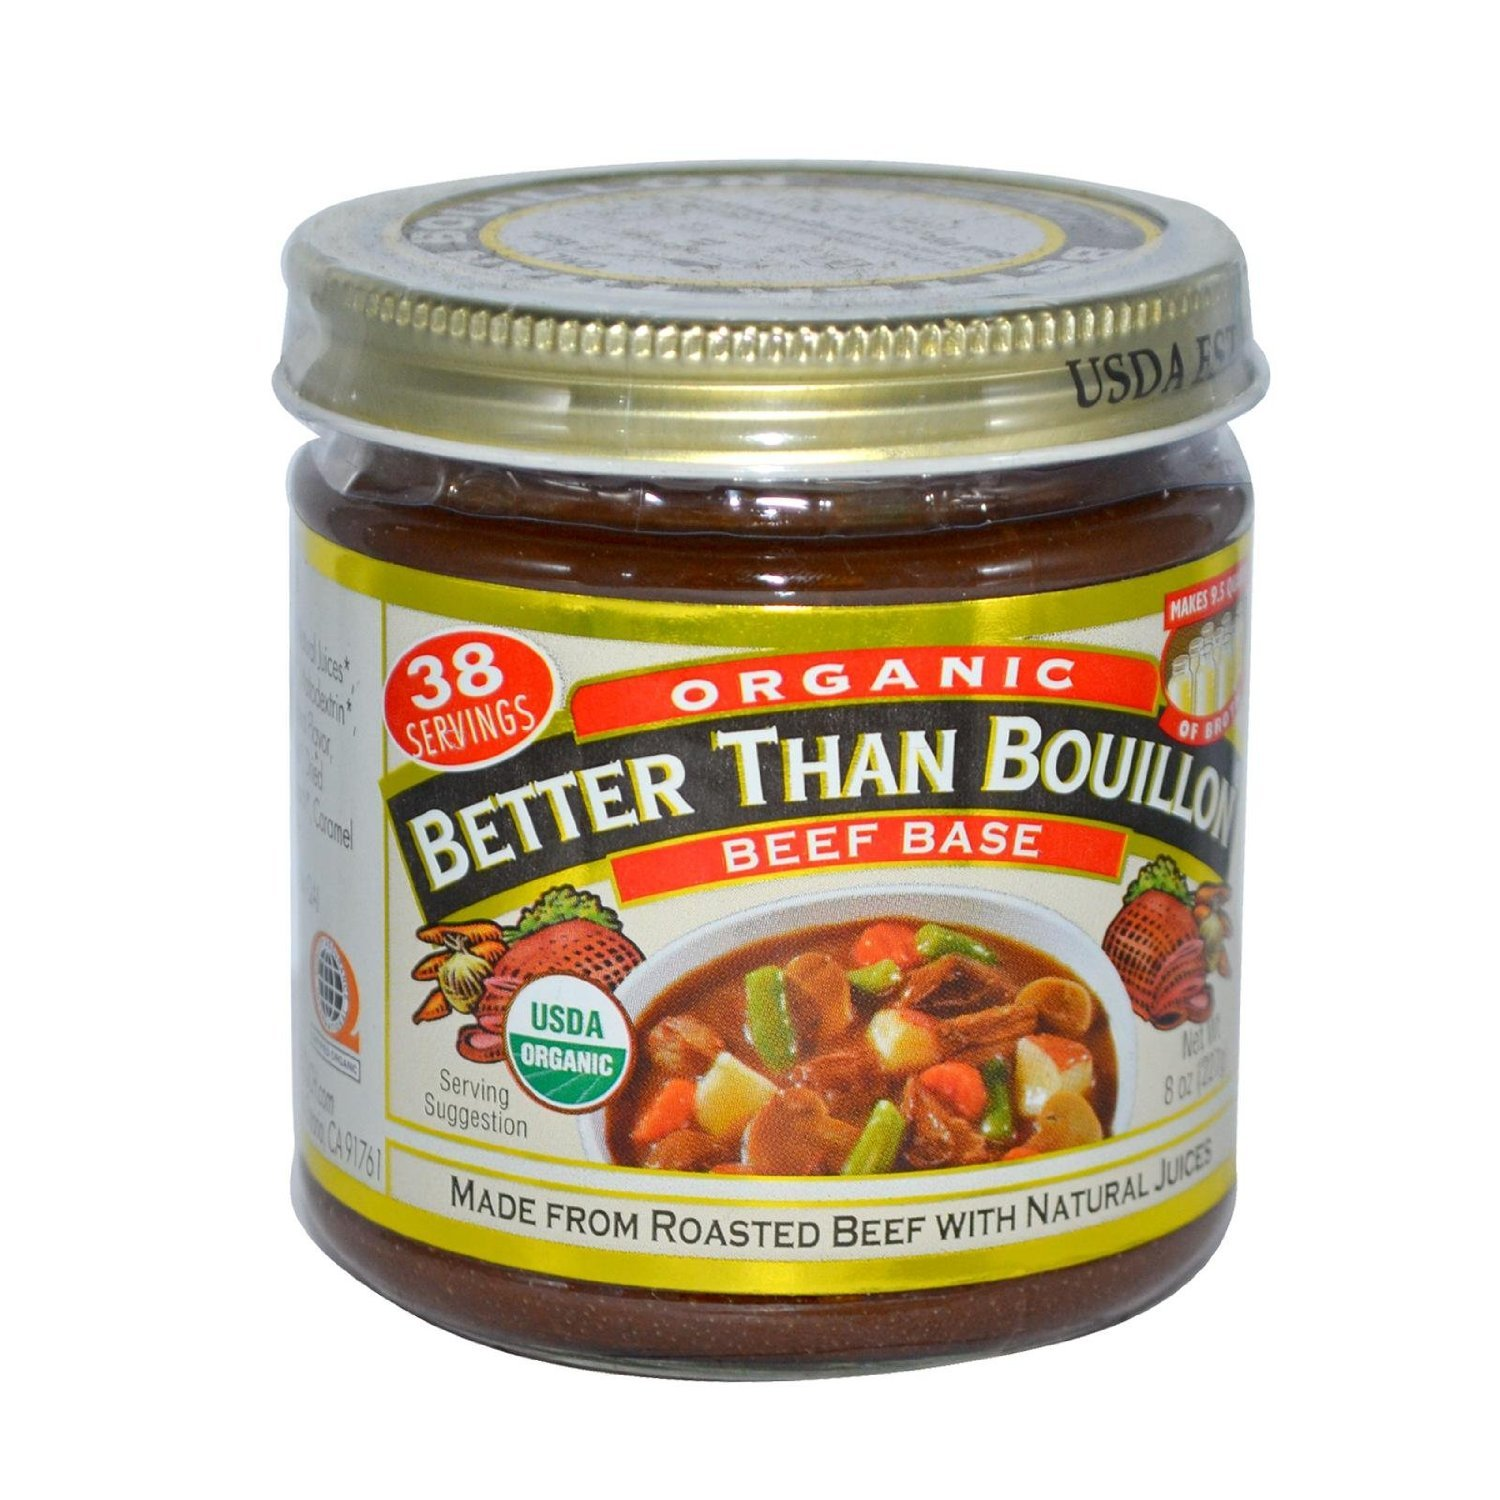 Better Than Bouillon Organic Beef Soup Base, 8 Ounce - 6 per case.